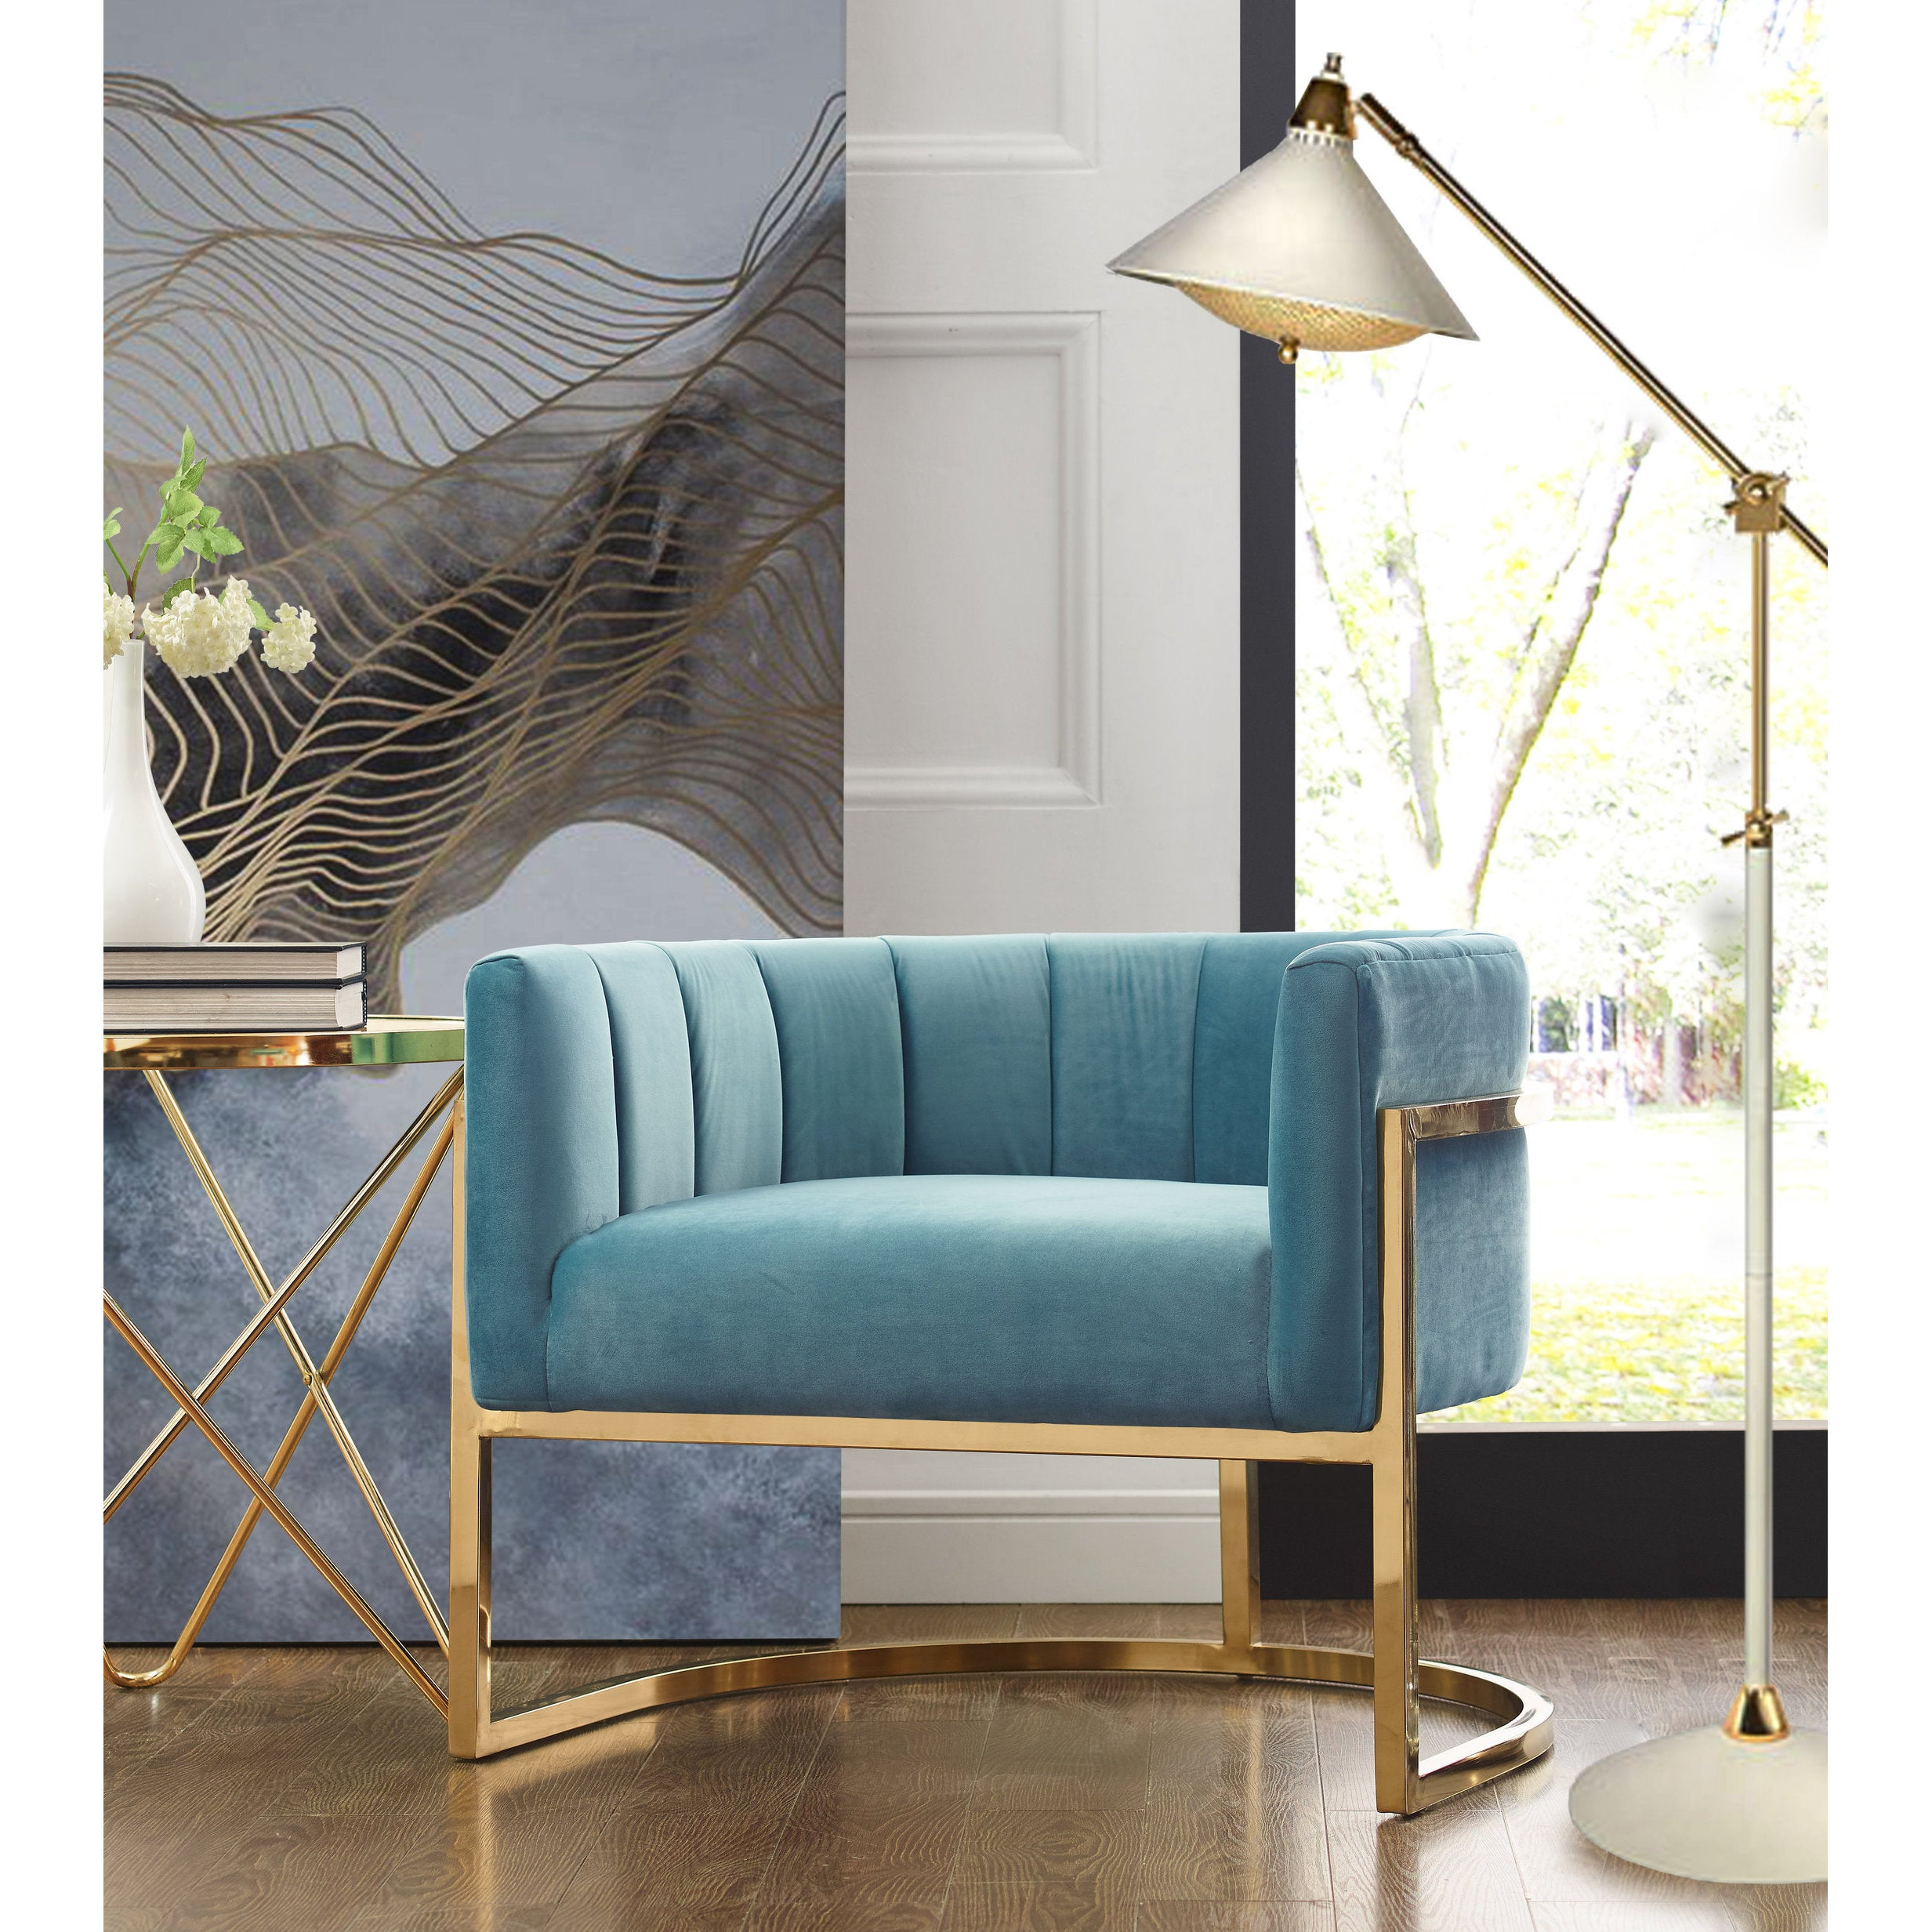 Shop Magnolia Sea Blue Chair with Gold Base - Free Shipping Today ...